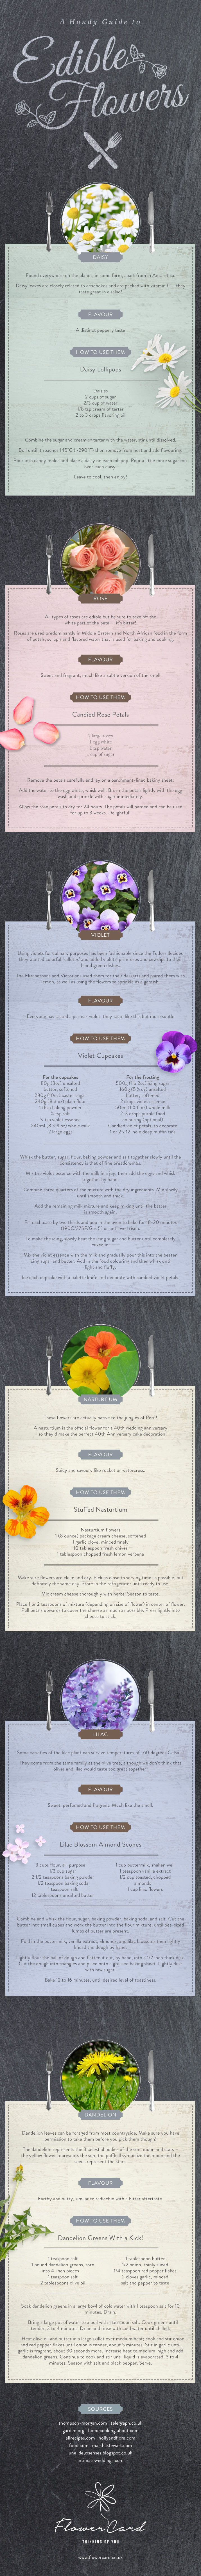 A Handy Guide to Edible Flowers